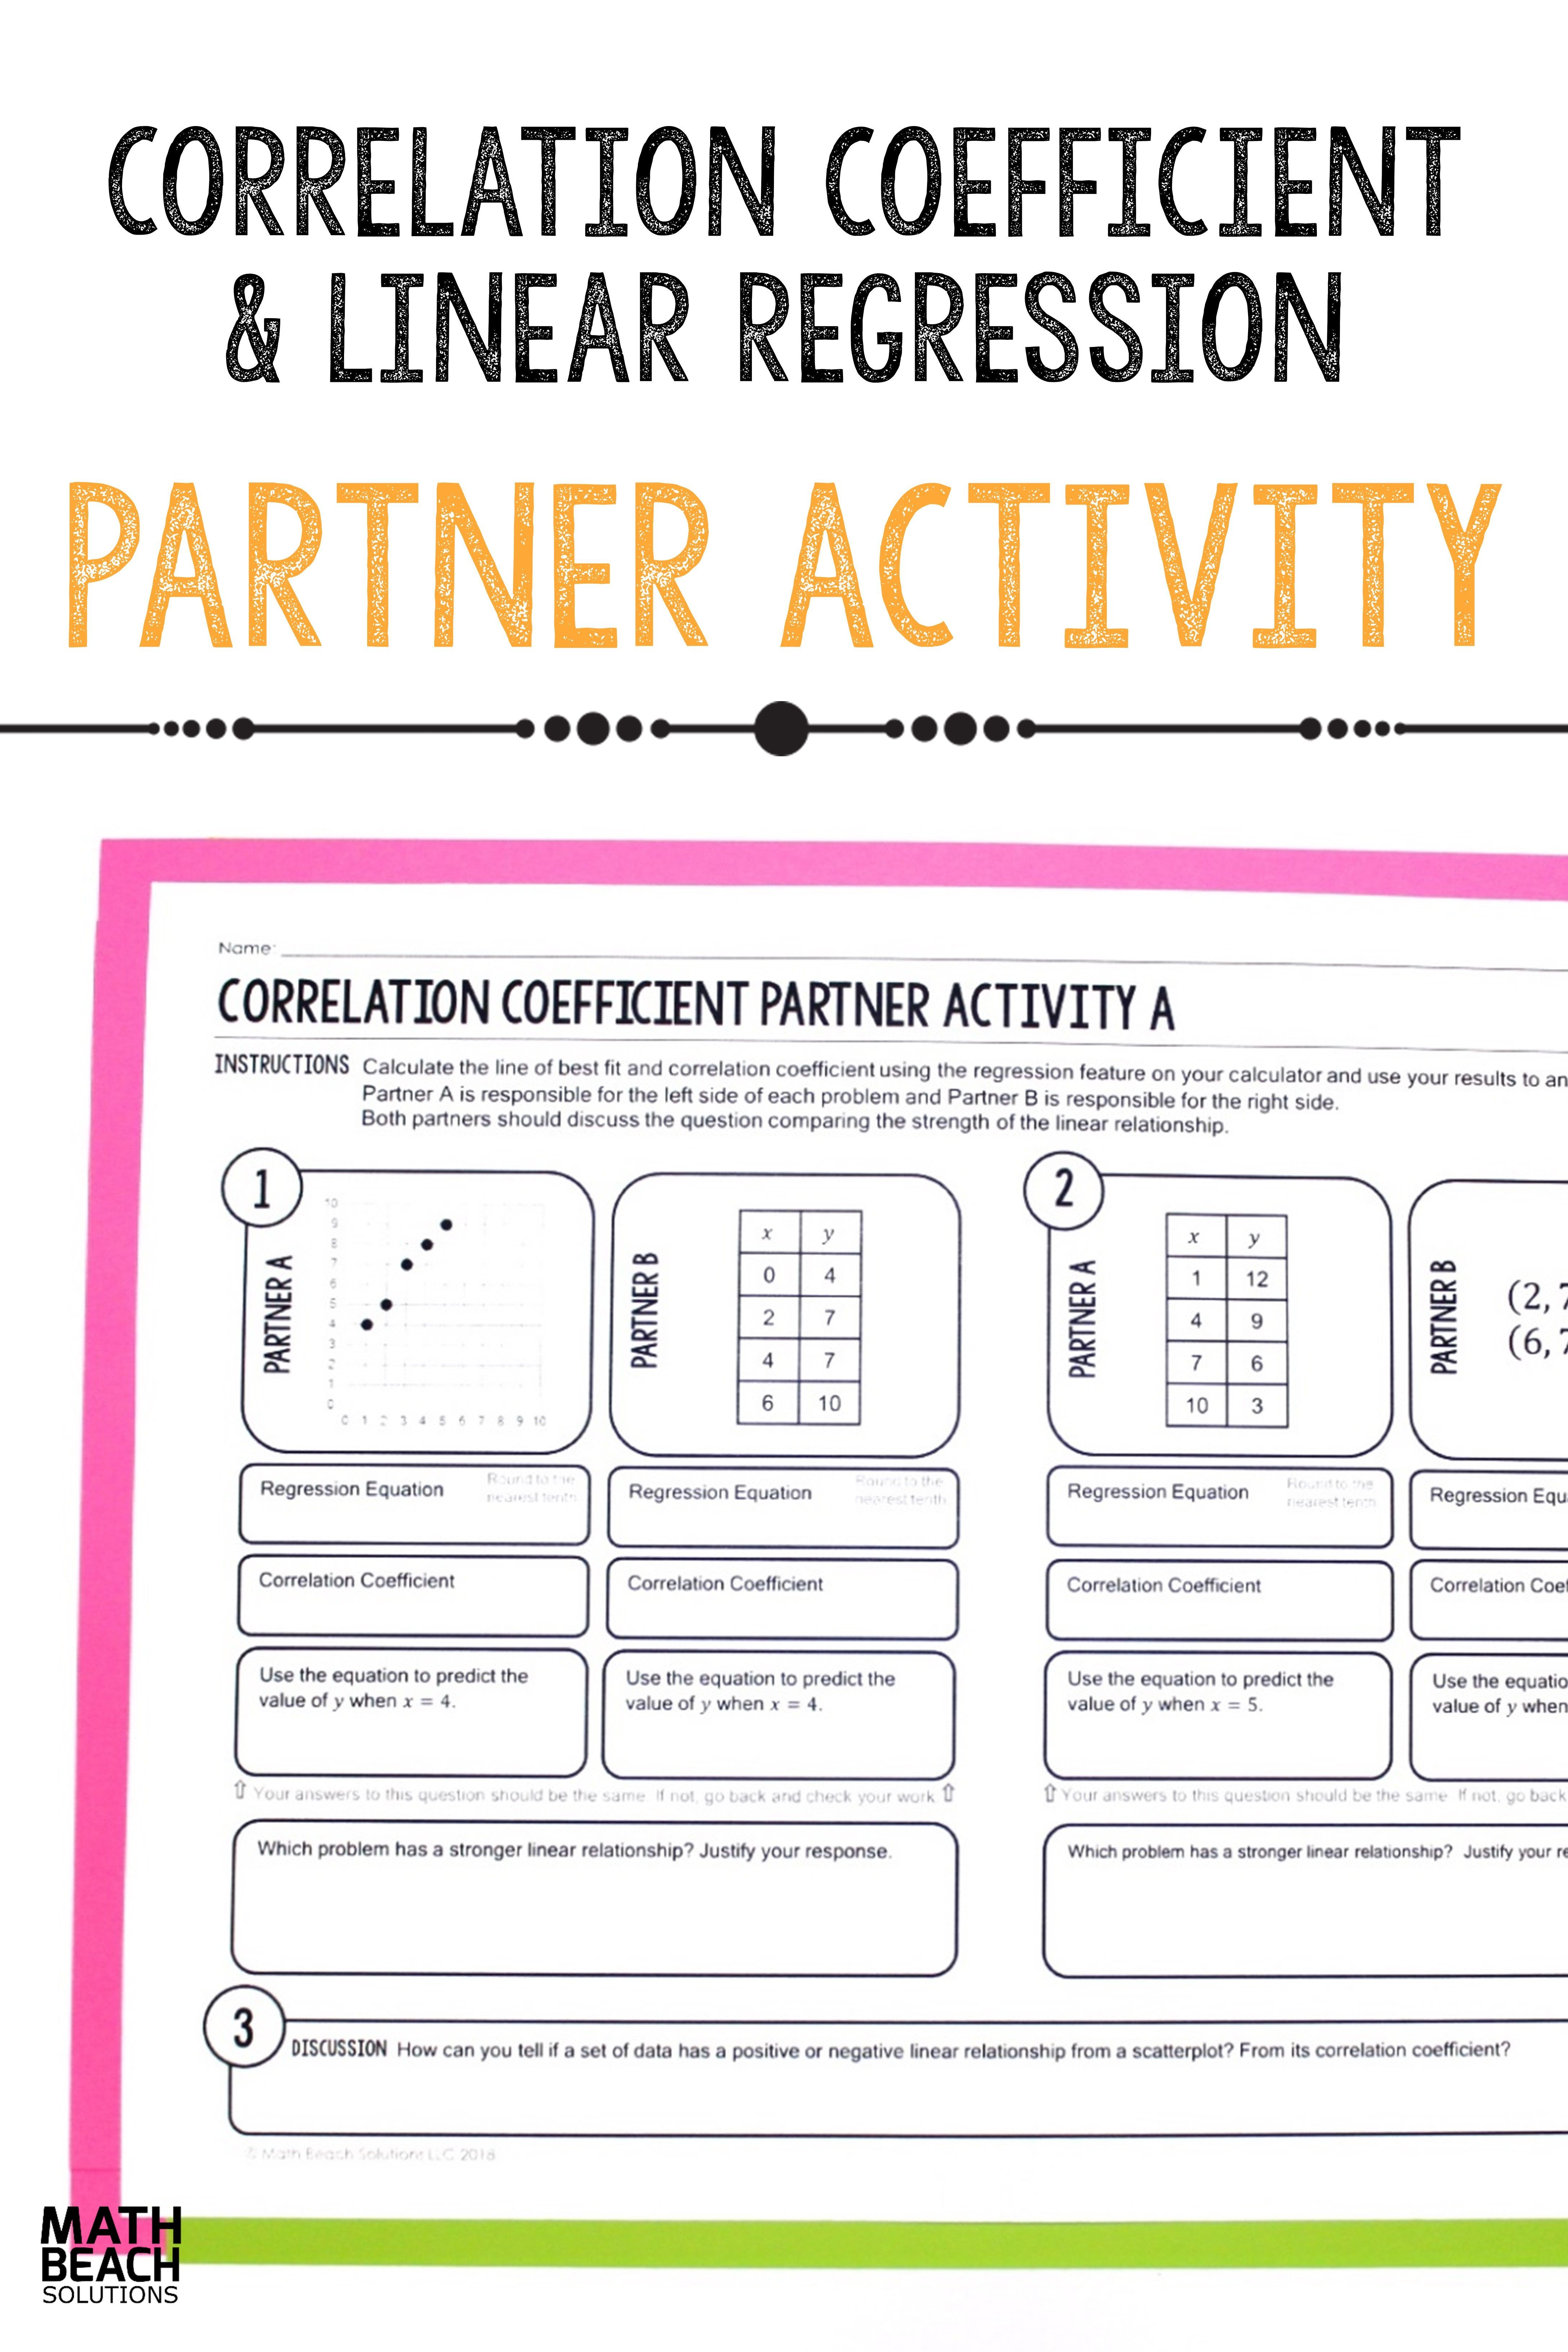 Correlation Coefficient Partner Activity Linear